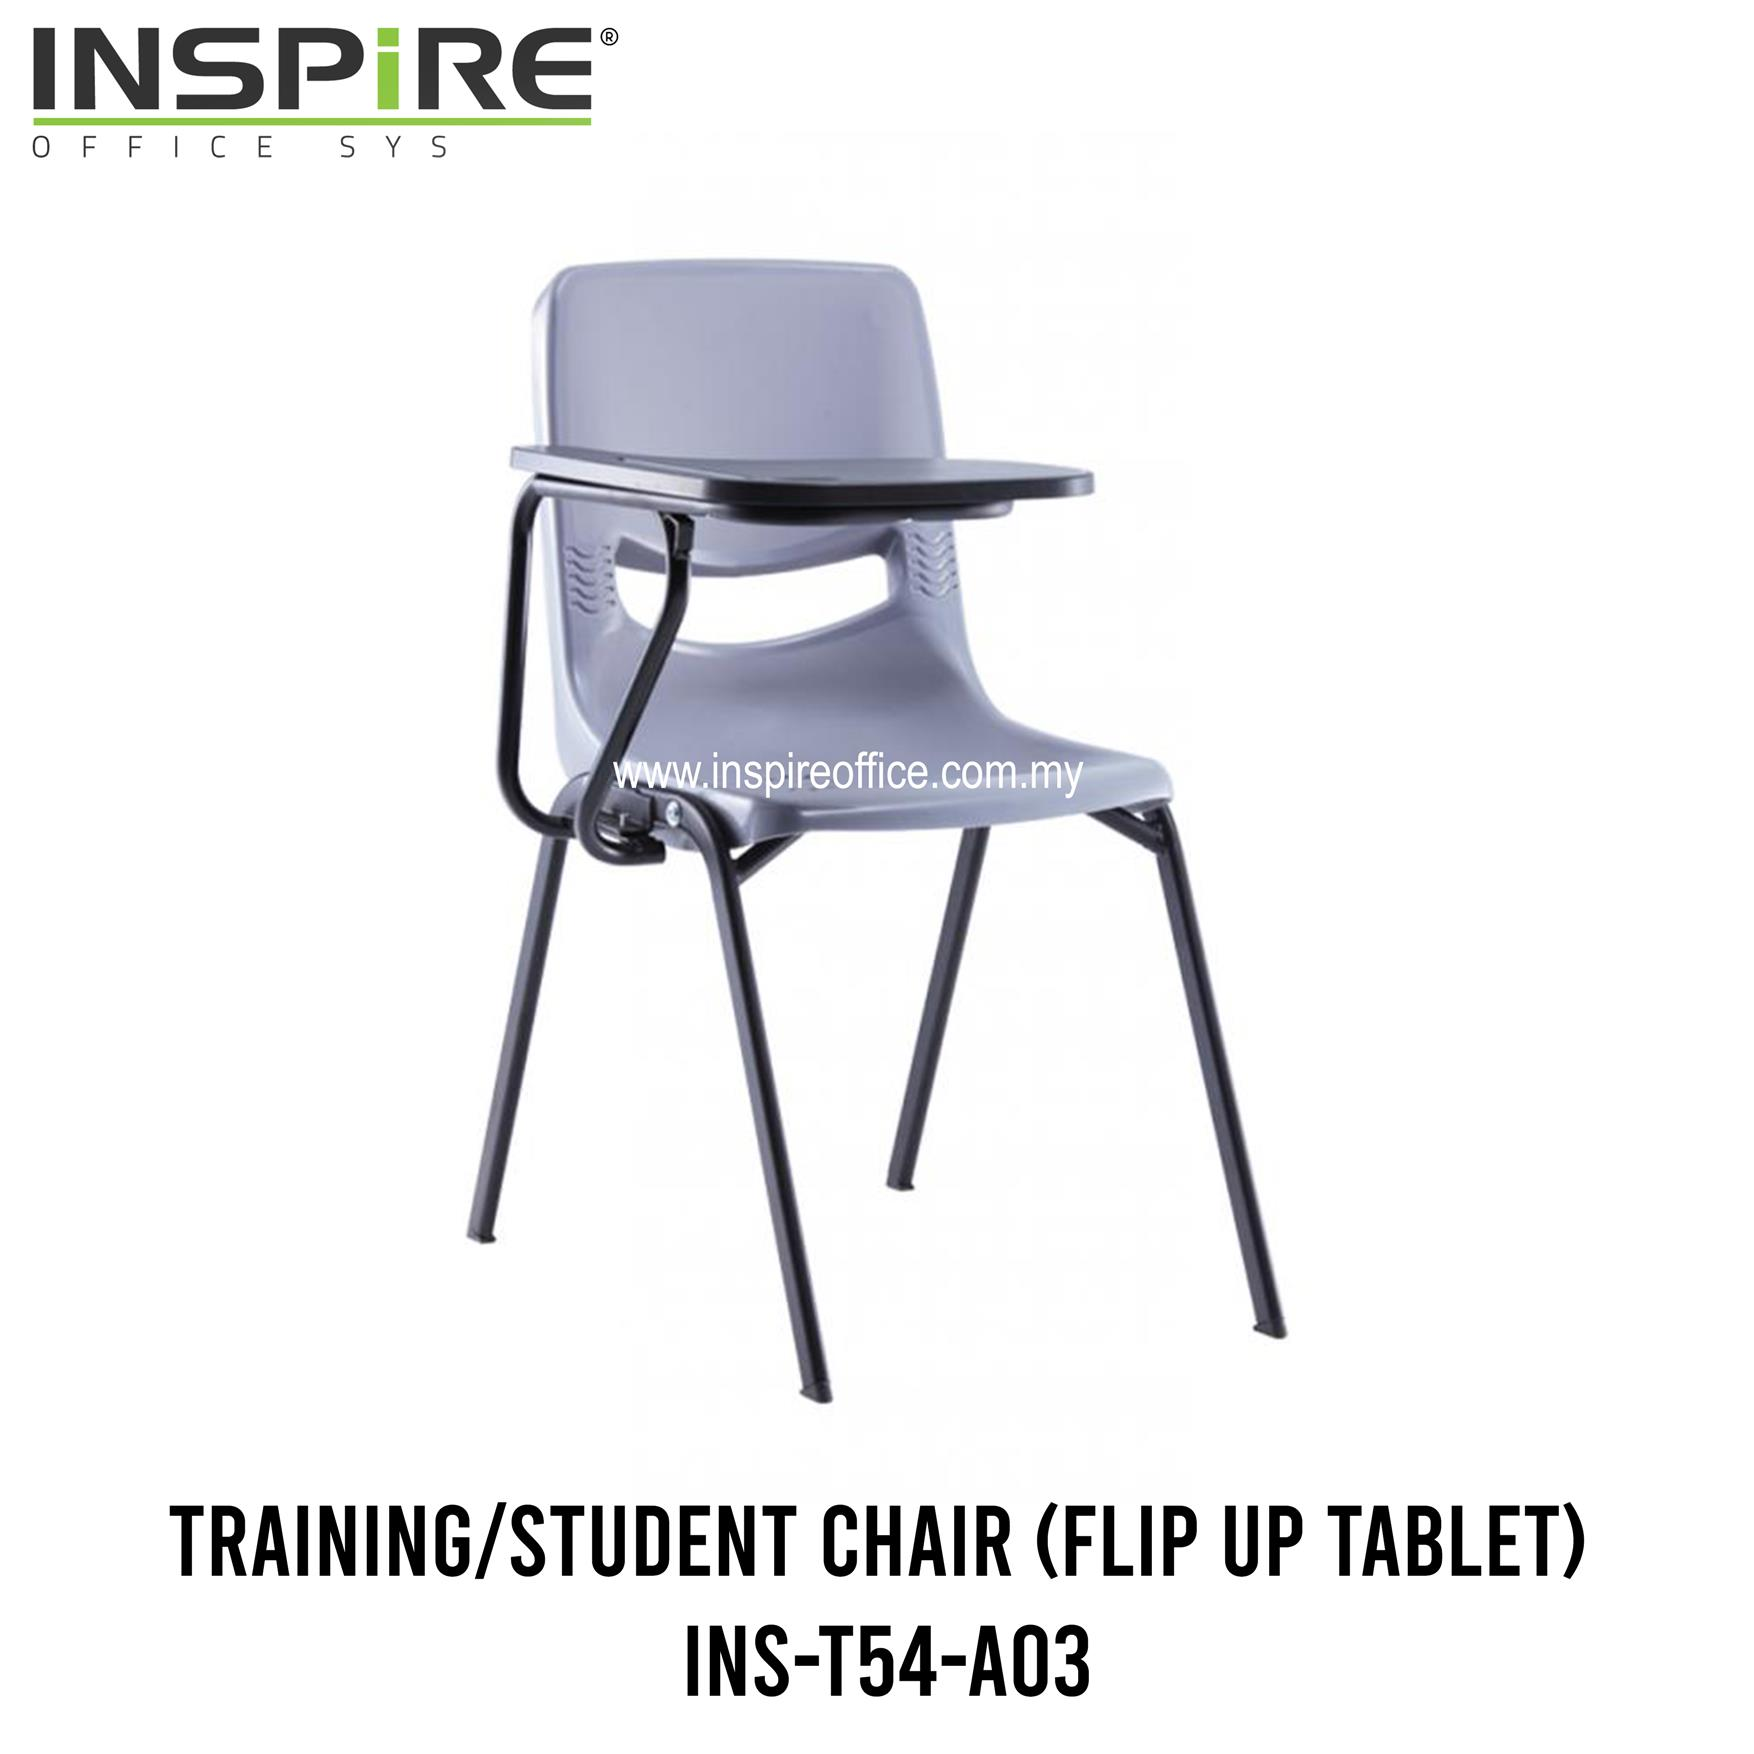 INS-T54-A03 Training/Student Chair (Flip Up Tablet)